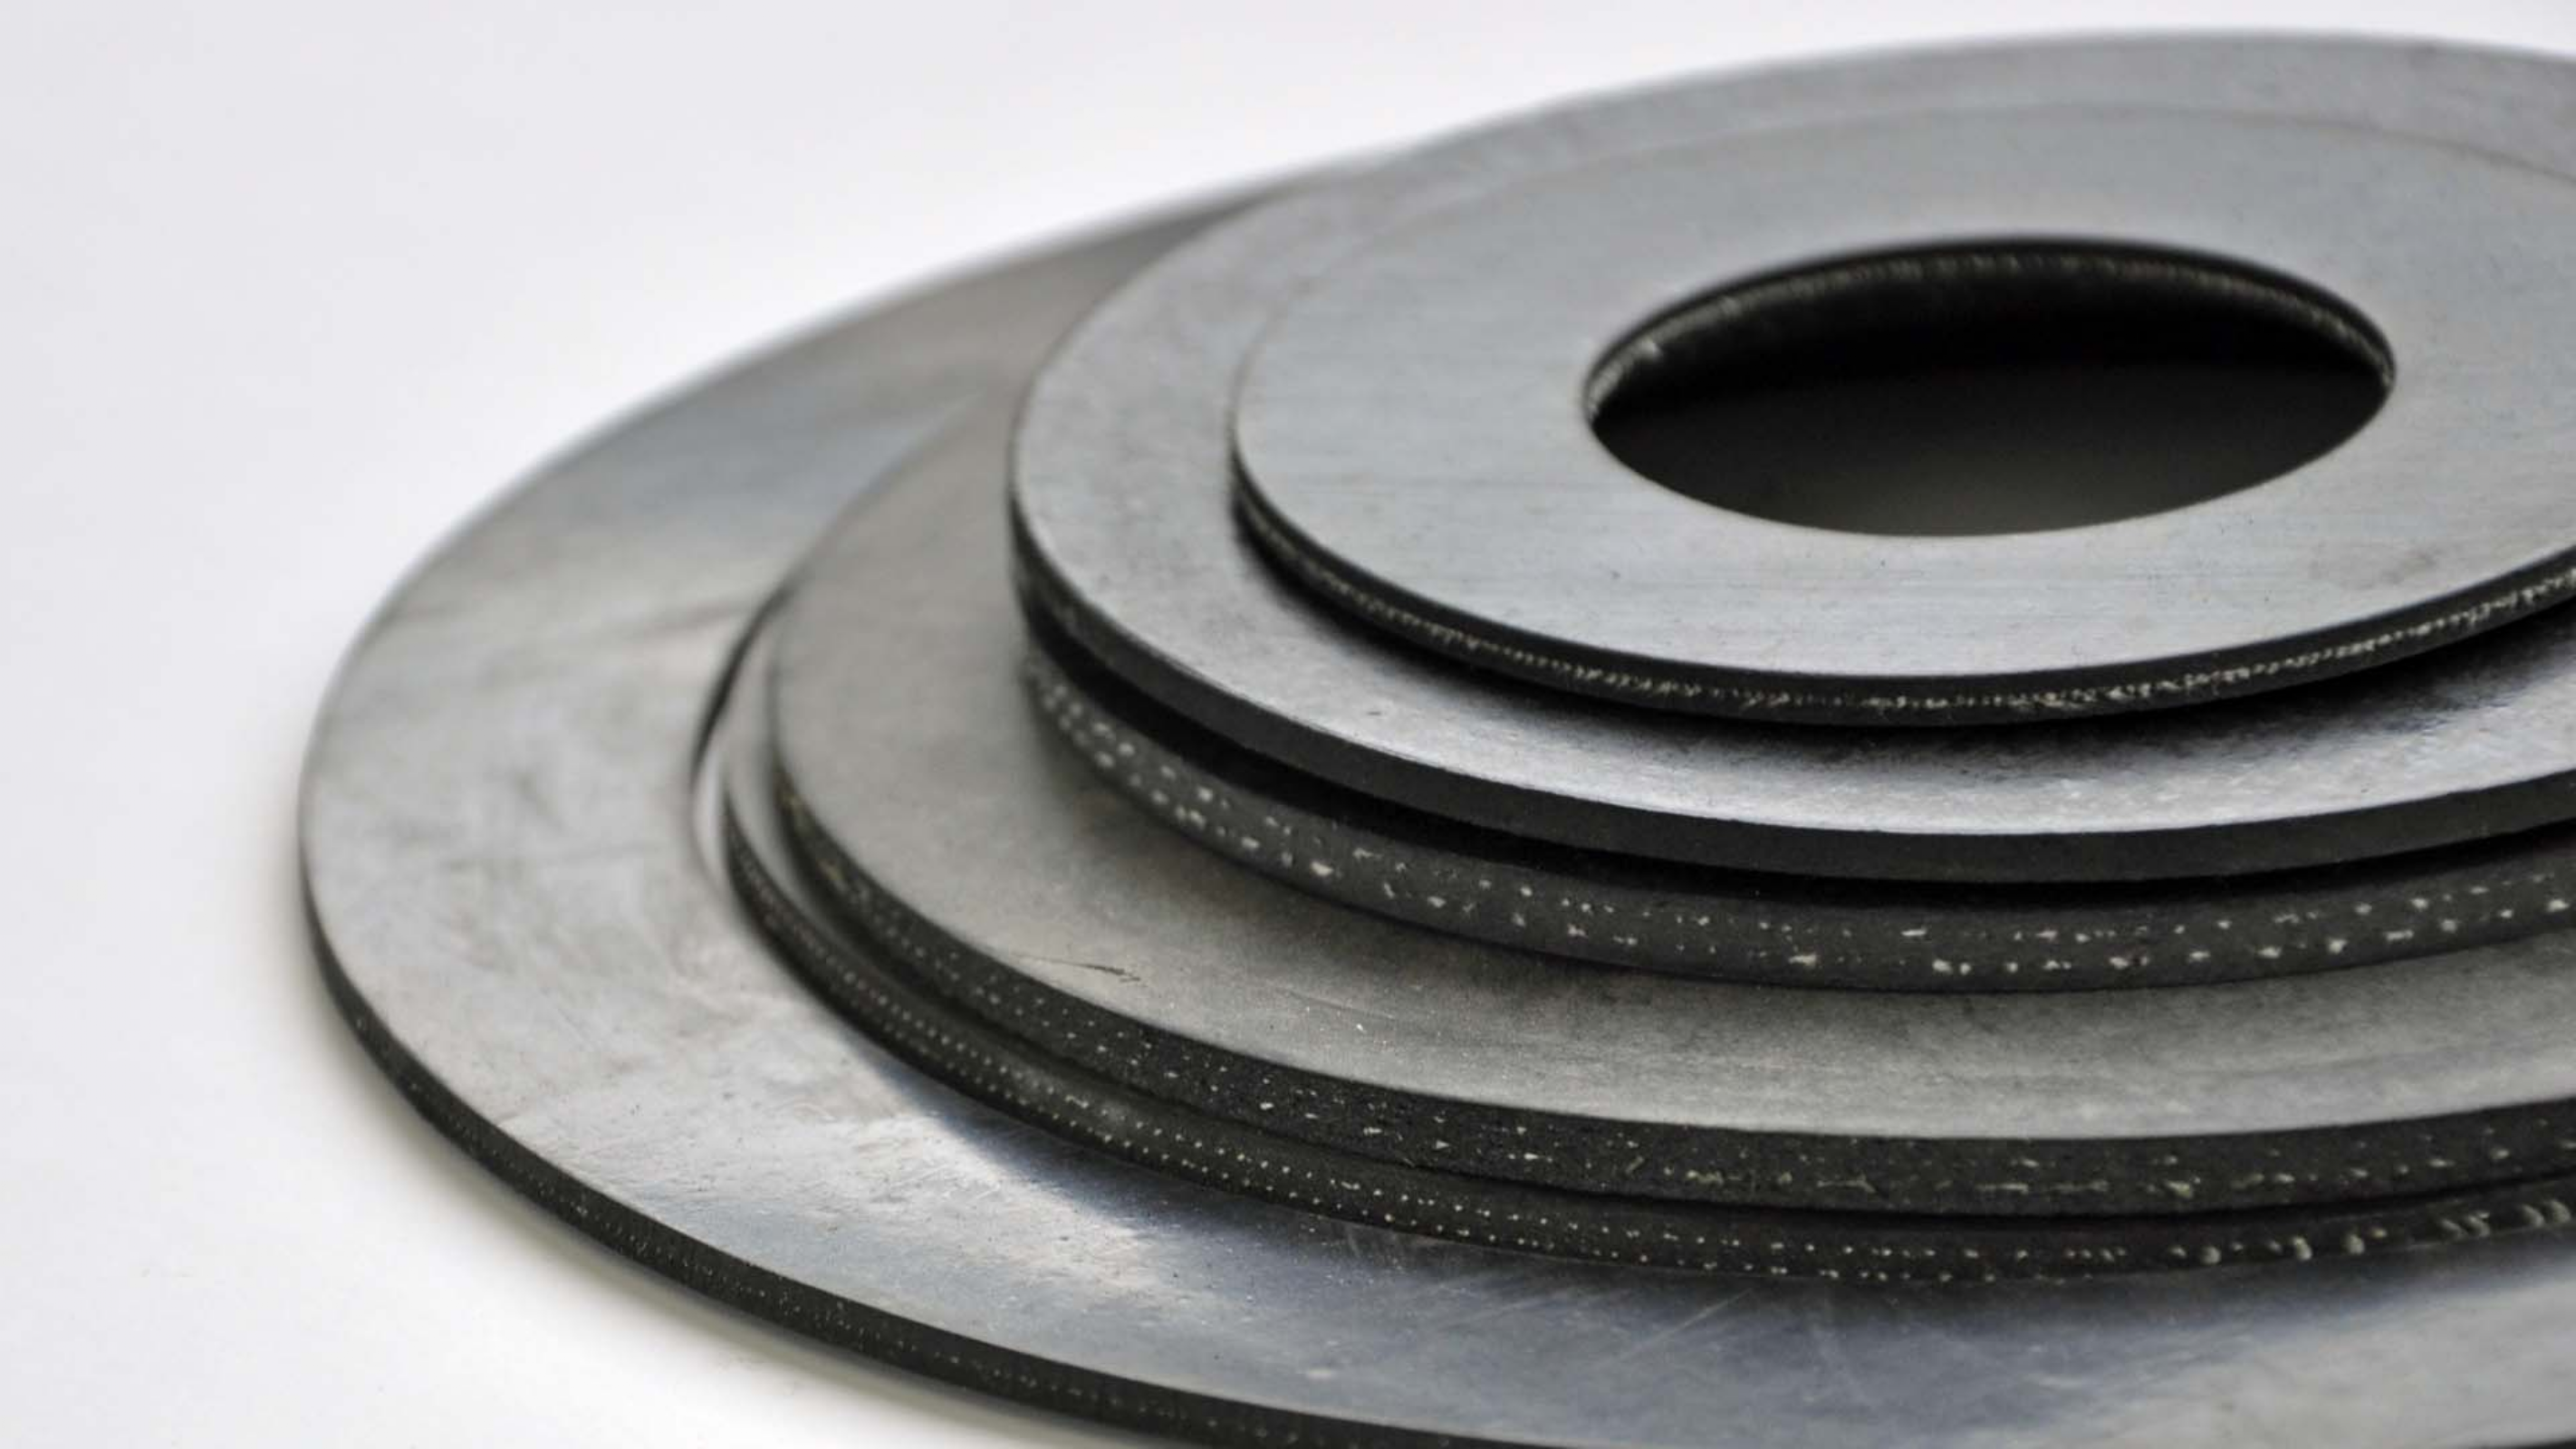 Gasket for pipes